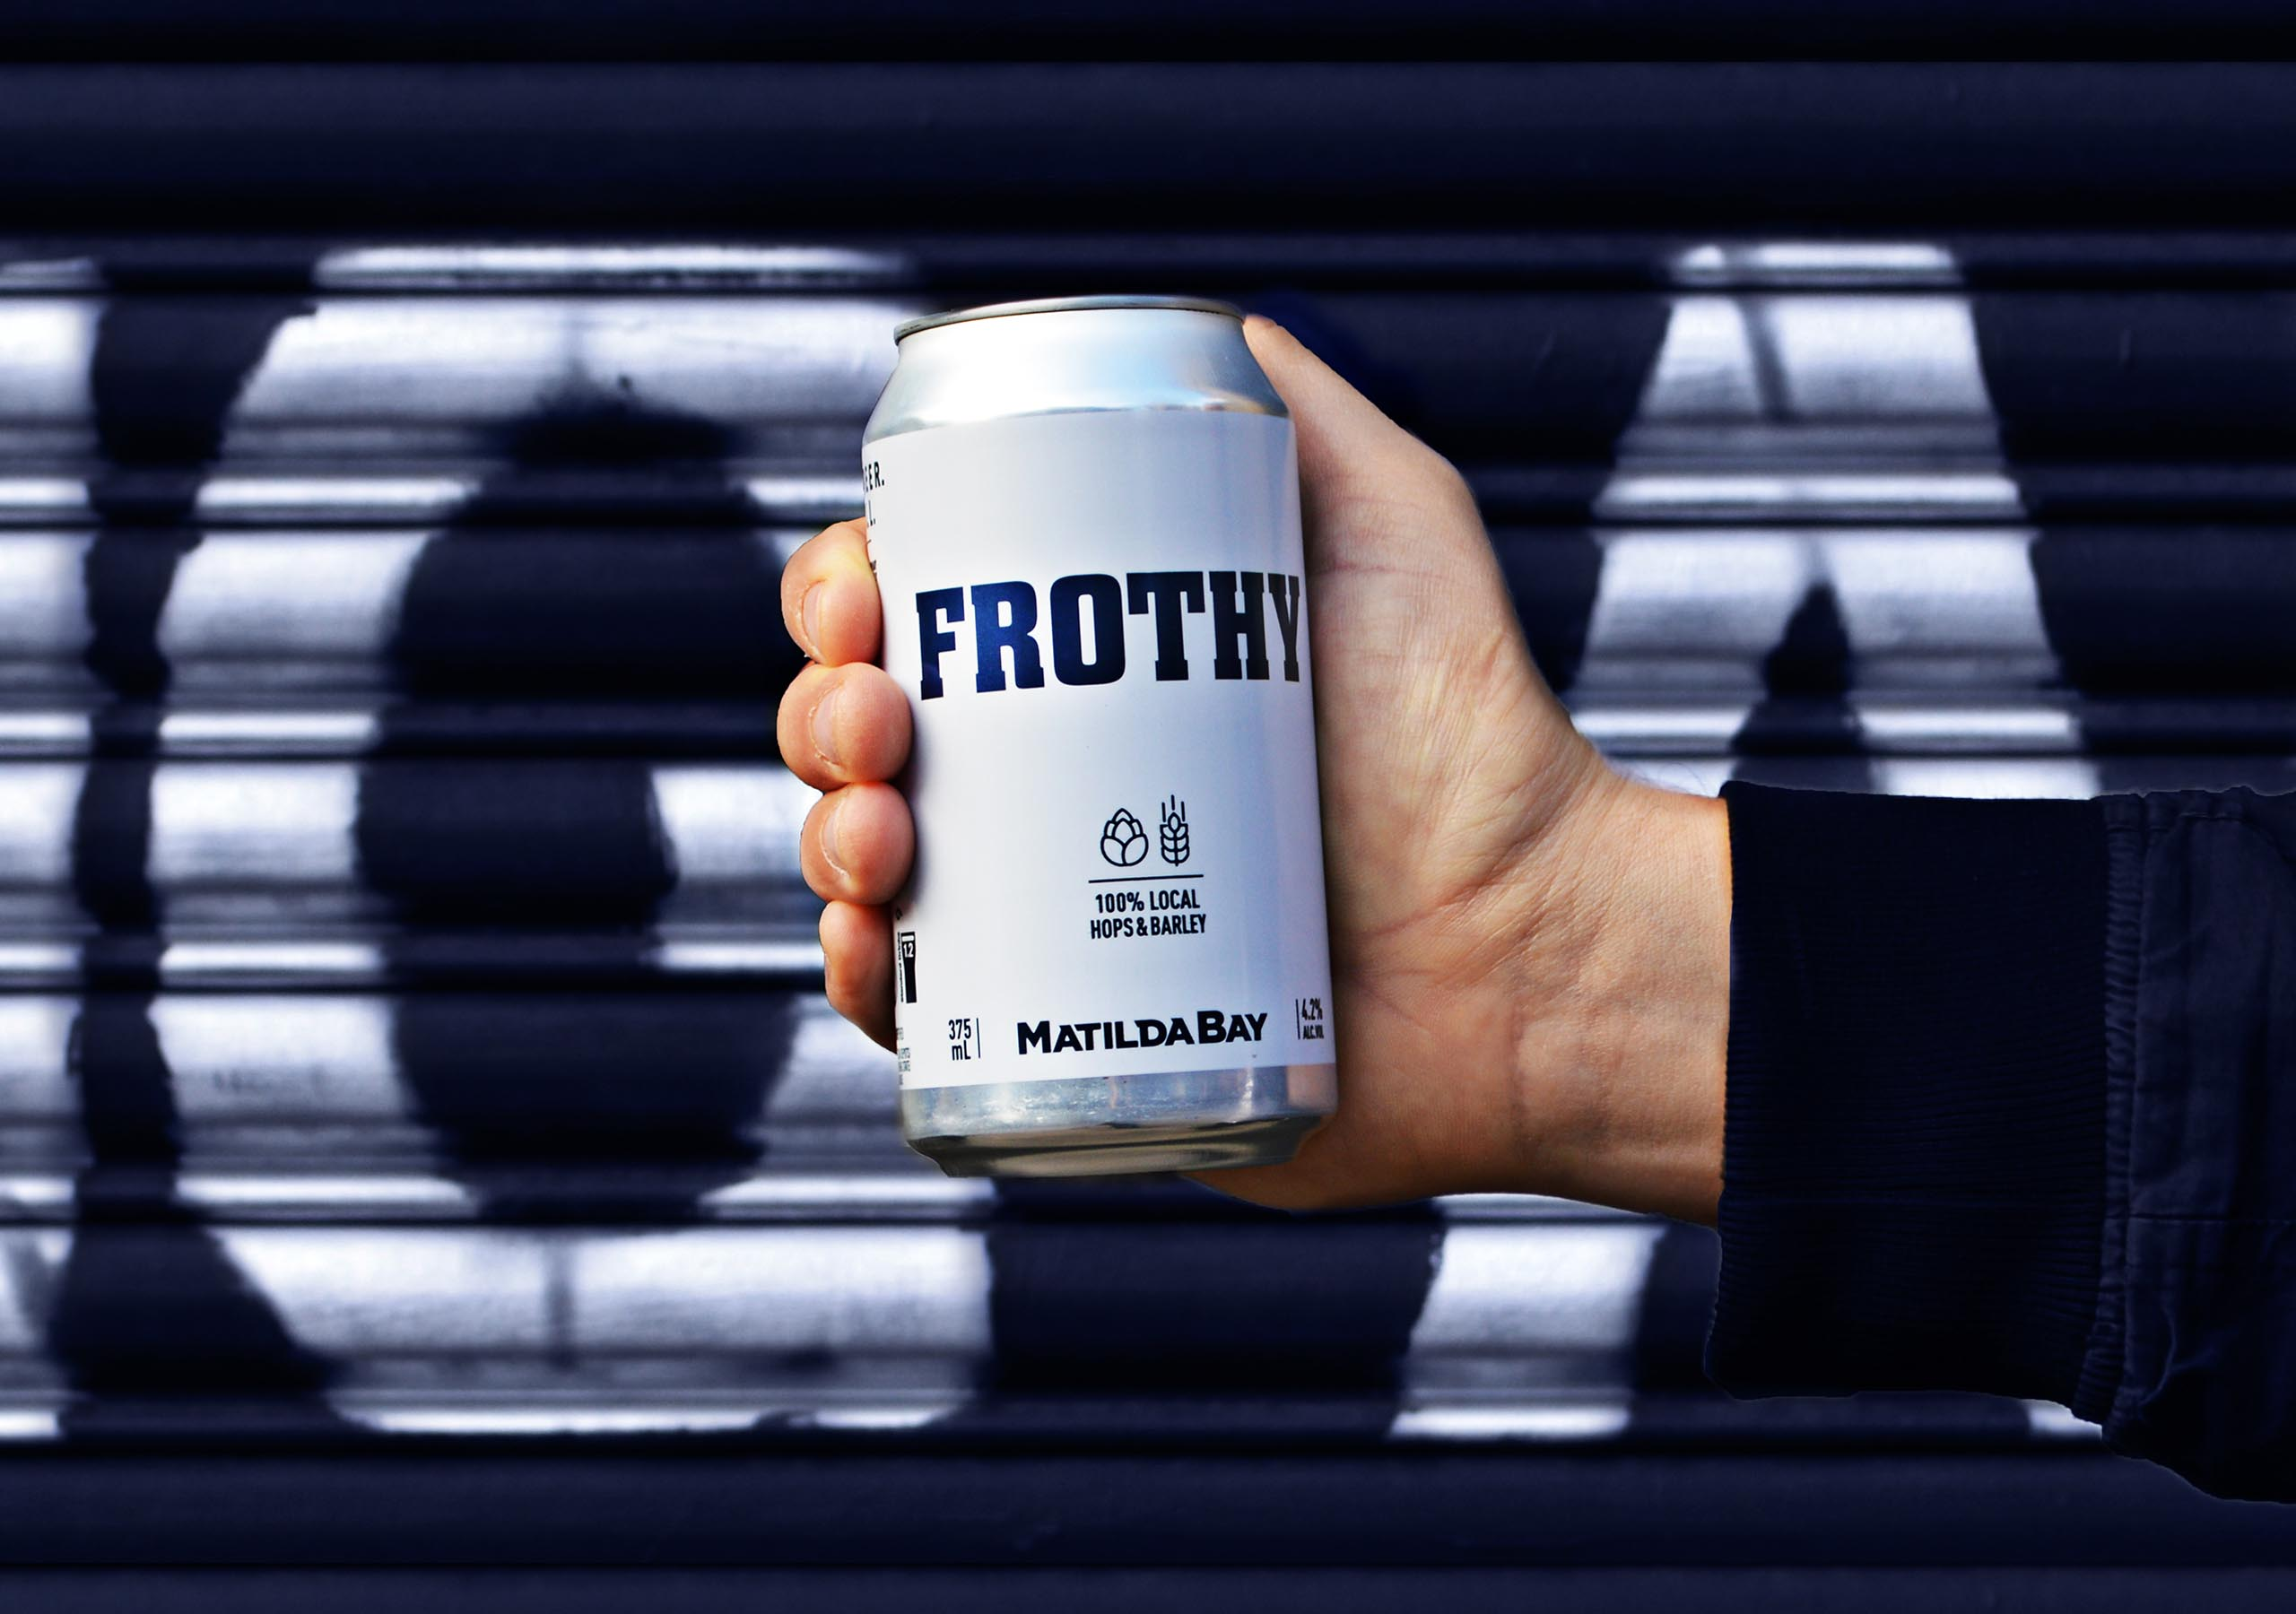 Frothy street blue2